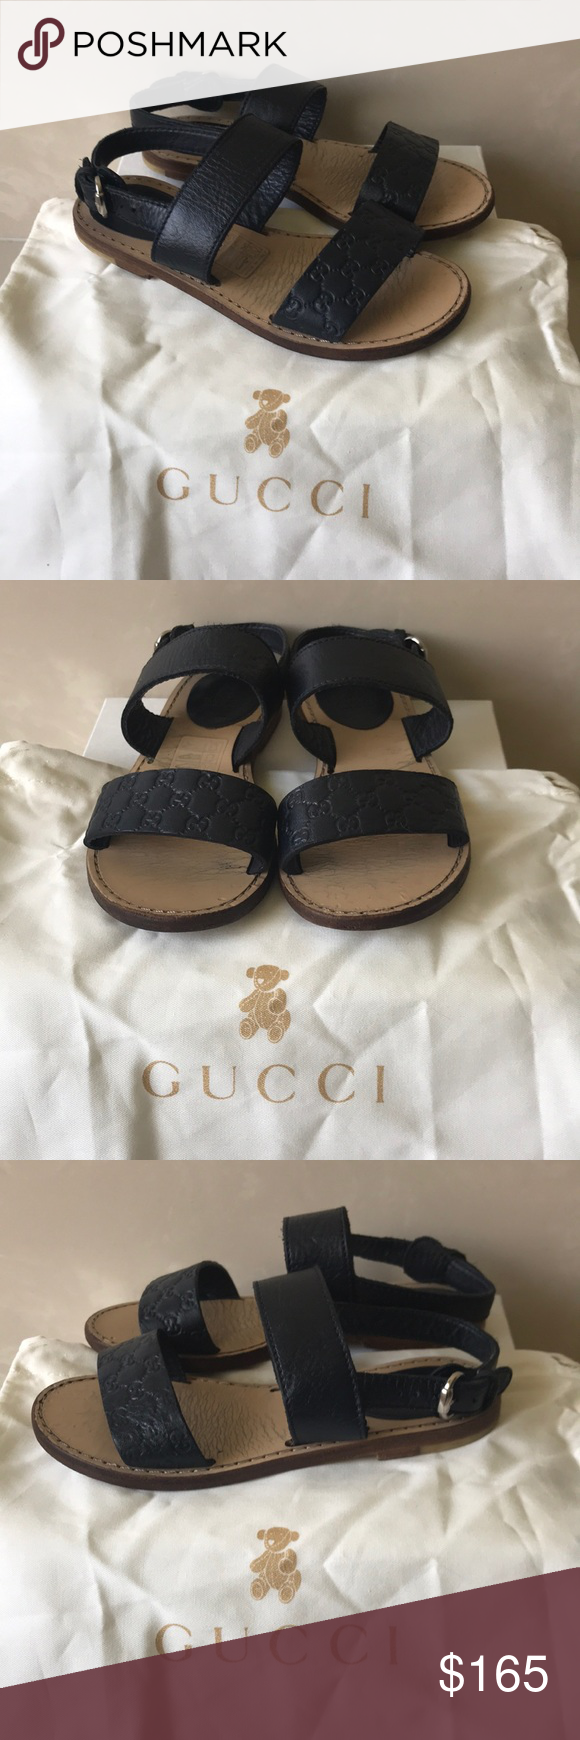 18cfa4644 Authentic Gucci GG Navy leather baby sandals 8.5 Authentic Gucci GG Navy  leather baby sandals Sz 8.5 Euro 26 good condition light wear scuffs some  marks on ...